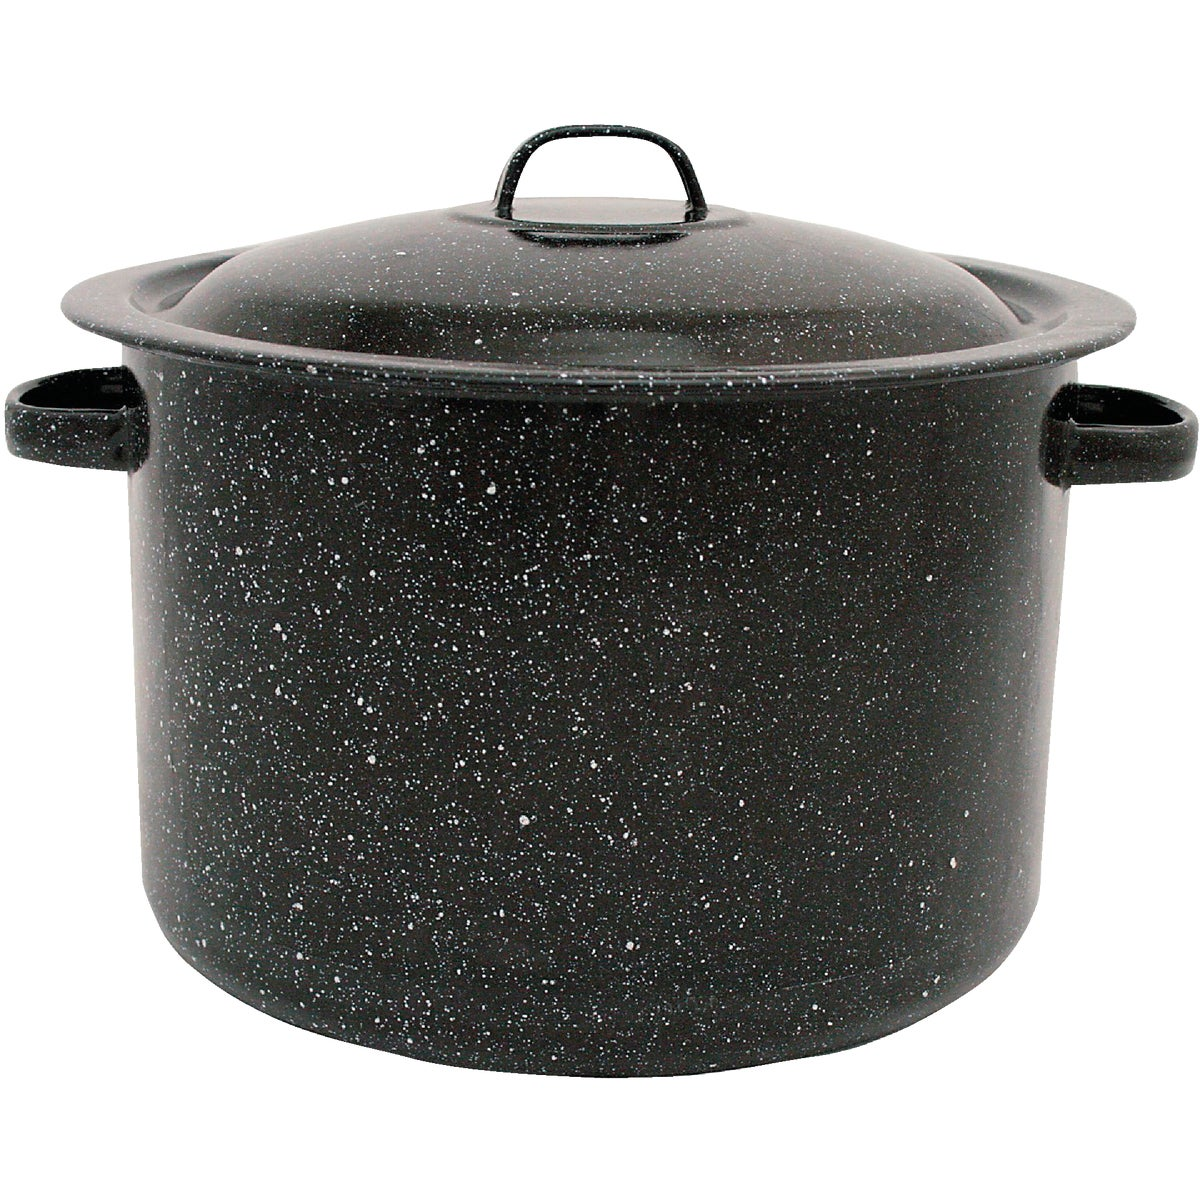 7-1/2QT STOCK POT - 6160-2 by Columbian Home Prod